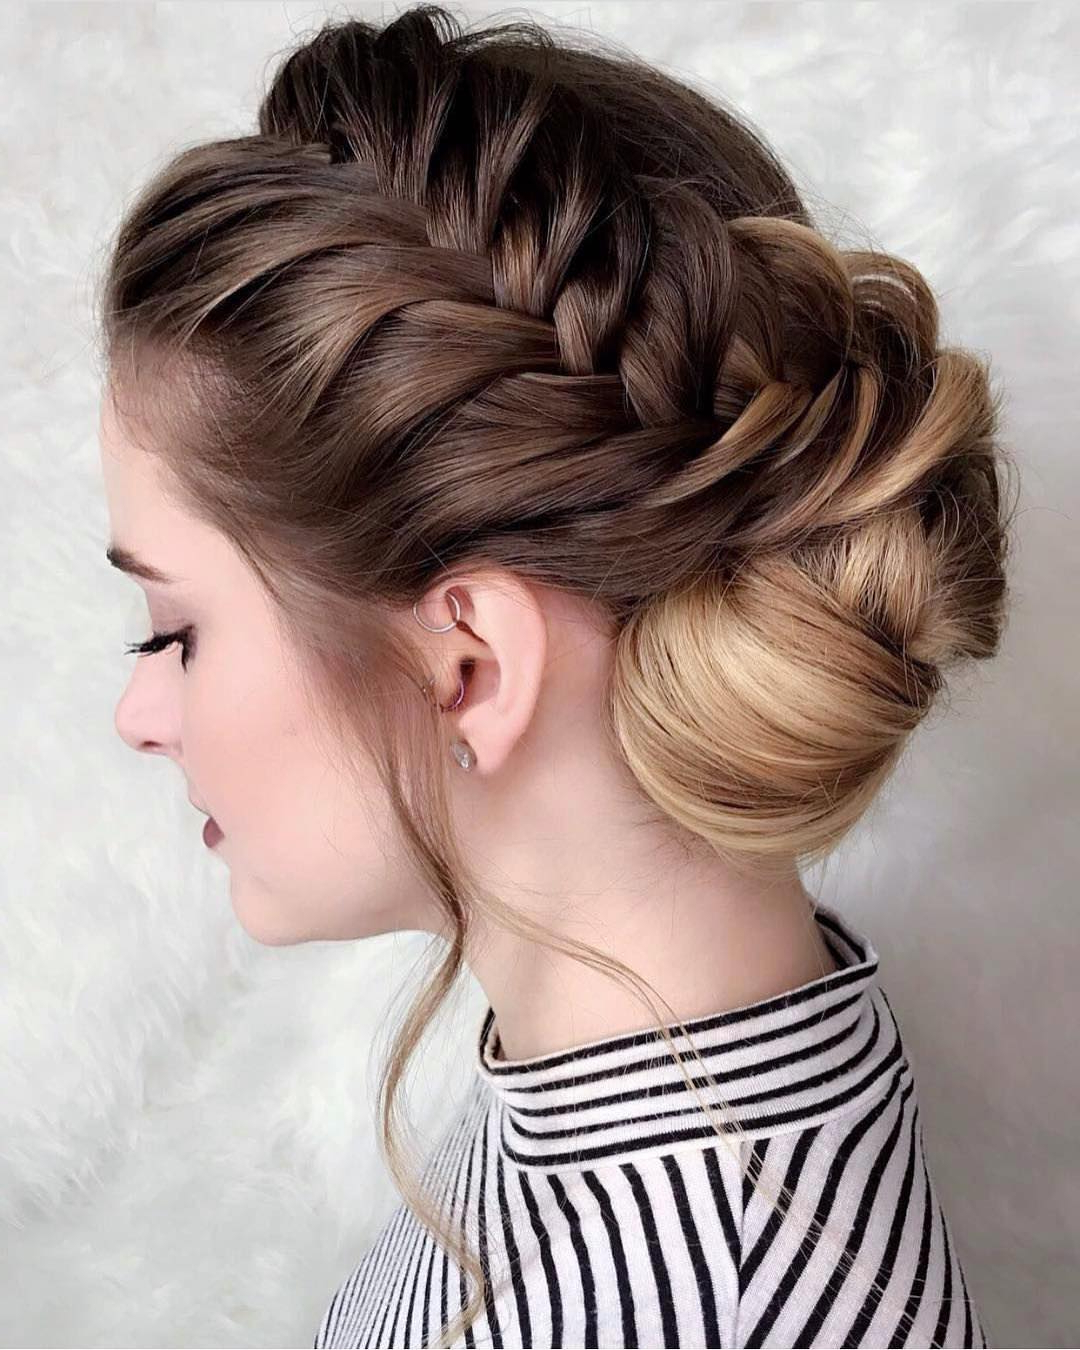 10 New Prom Updo Hair Styles 2019 – Gorgeously Creative New Looks Regarding Widely Used Asymmetrical Knotted Prom Updos (View 3 of 20)